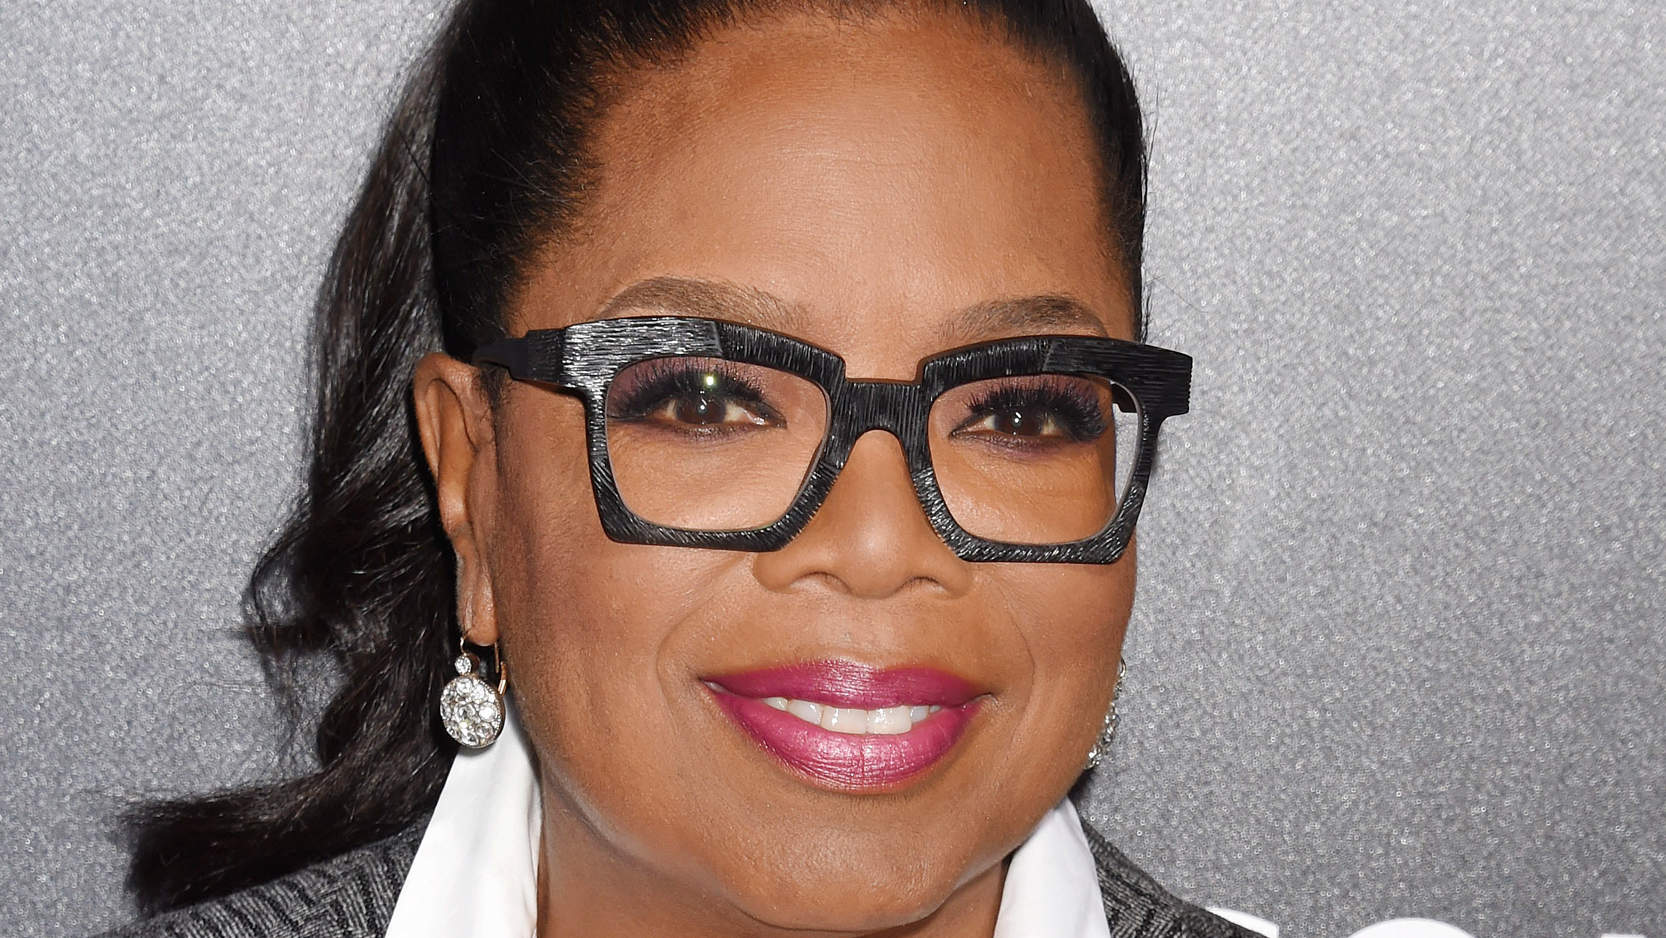 Producer/actress Oprah Winfrey attends the premiere of Lionsgate's 'Boo! A Madea Halloween' at the ArcLight Cinerama Dome on October 17, 2016 in Hollywood, California.